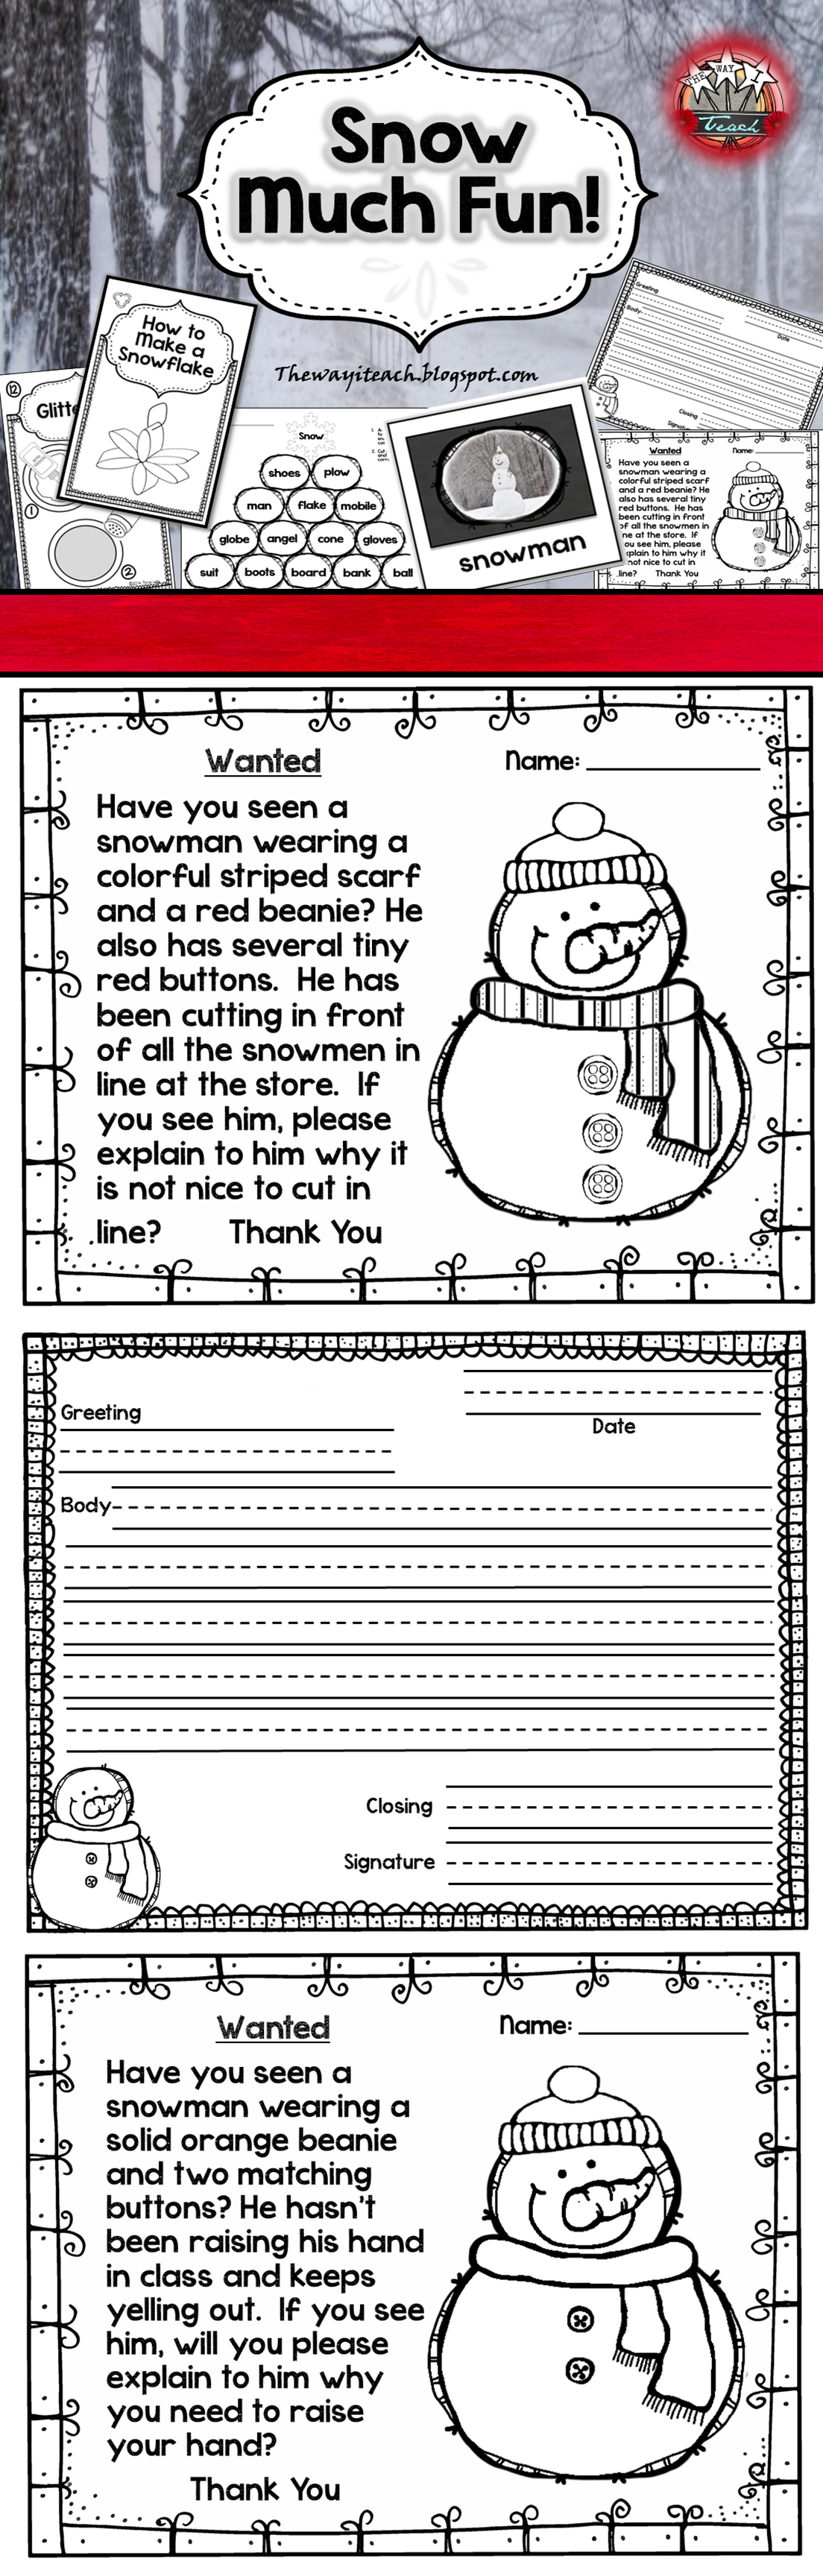 Christmas Activities Winter Activities Compound Words Social Skills Snowflake Craft Friendly Snowmen Activities Art Therapy Activities Holiday Activities [ 3456 x 1104 Pixel ]